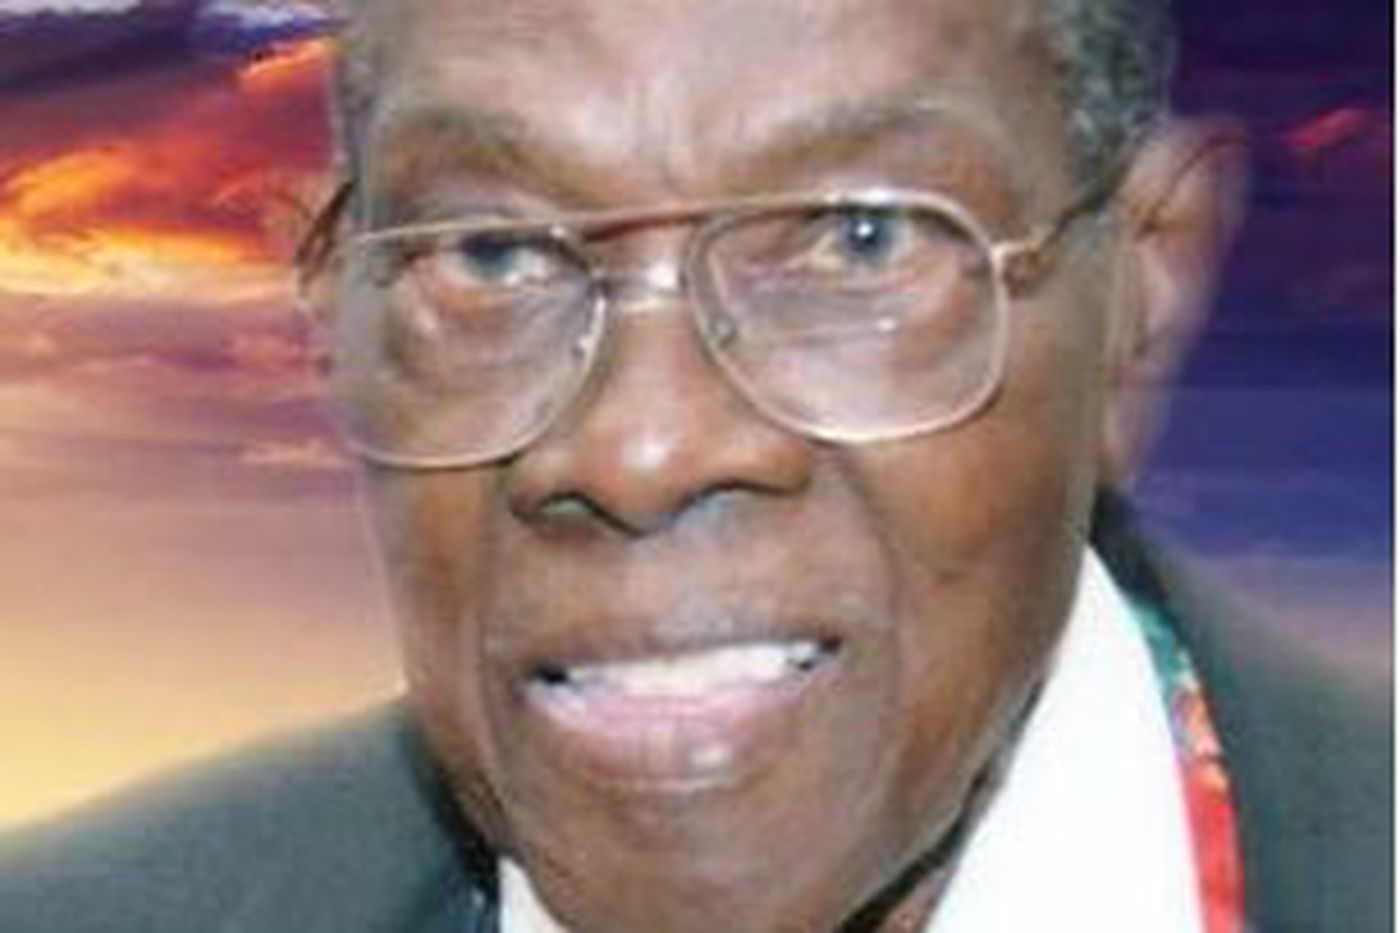 Thomas J. Upshaw Jr., 86, retired Philly assistant fire marshal, and former NJ liquor store owner